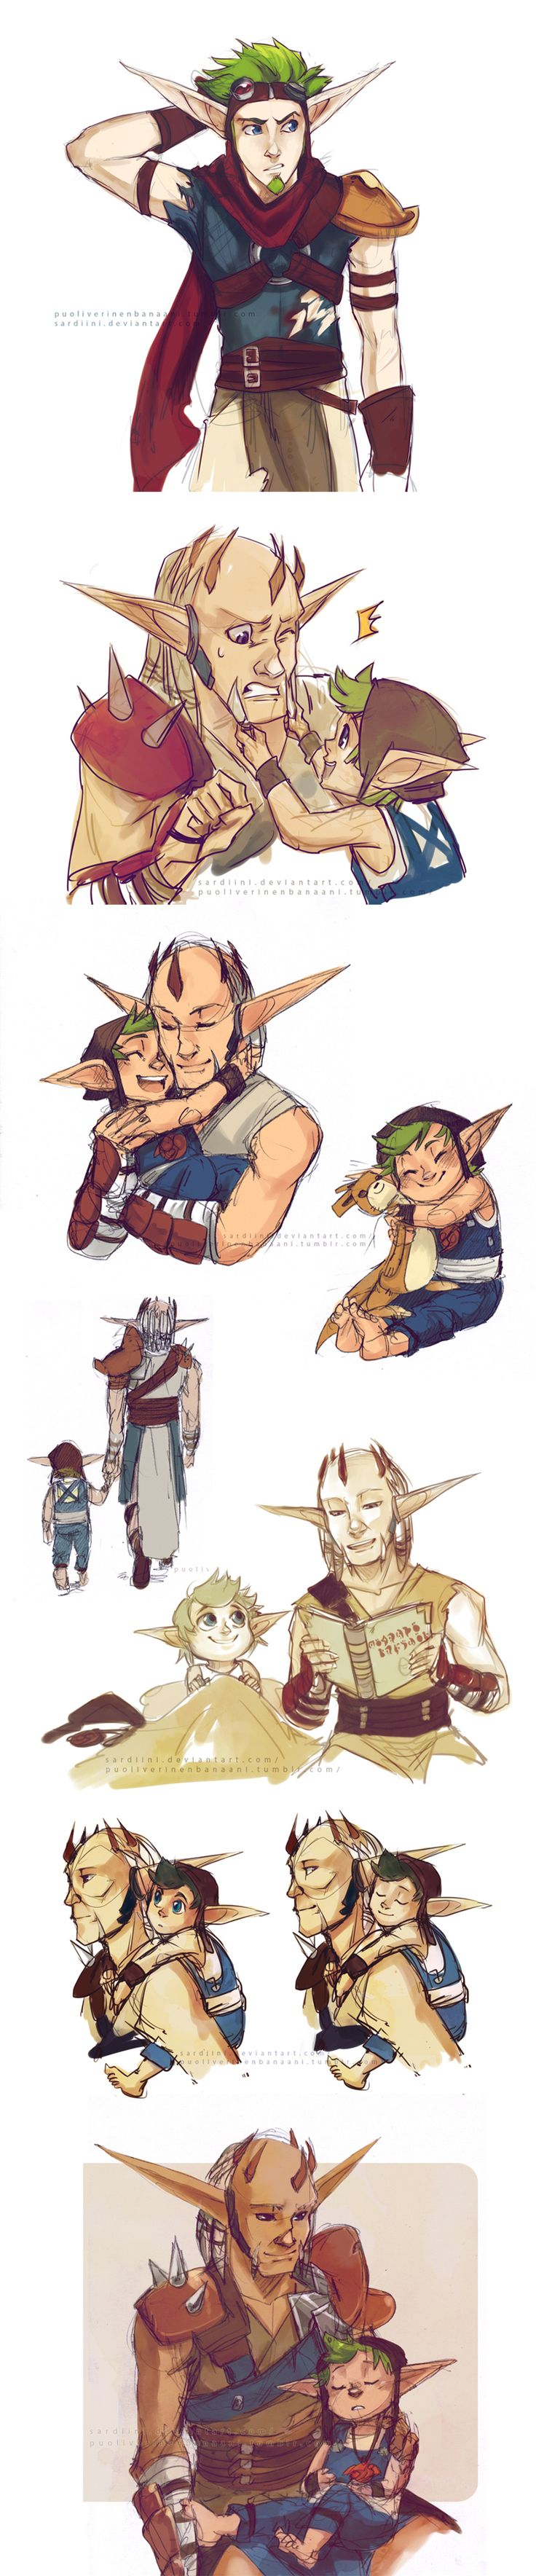 Jak - Mar and Damas by Sardiini.deviantart.com on @deviantART-CRYING FOREVER